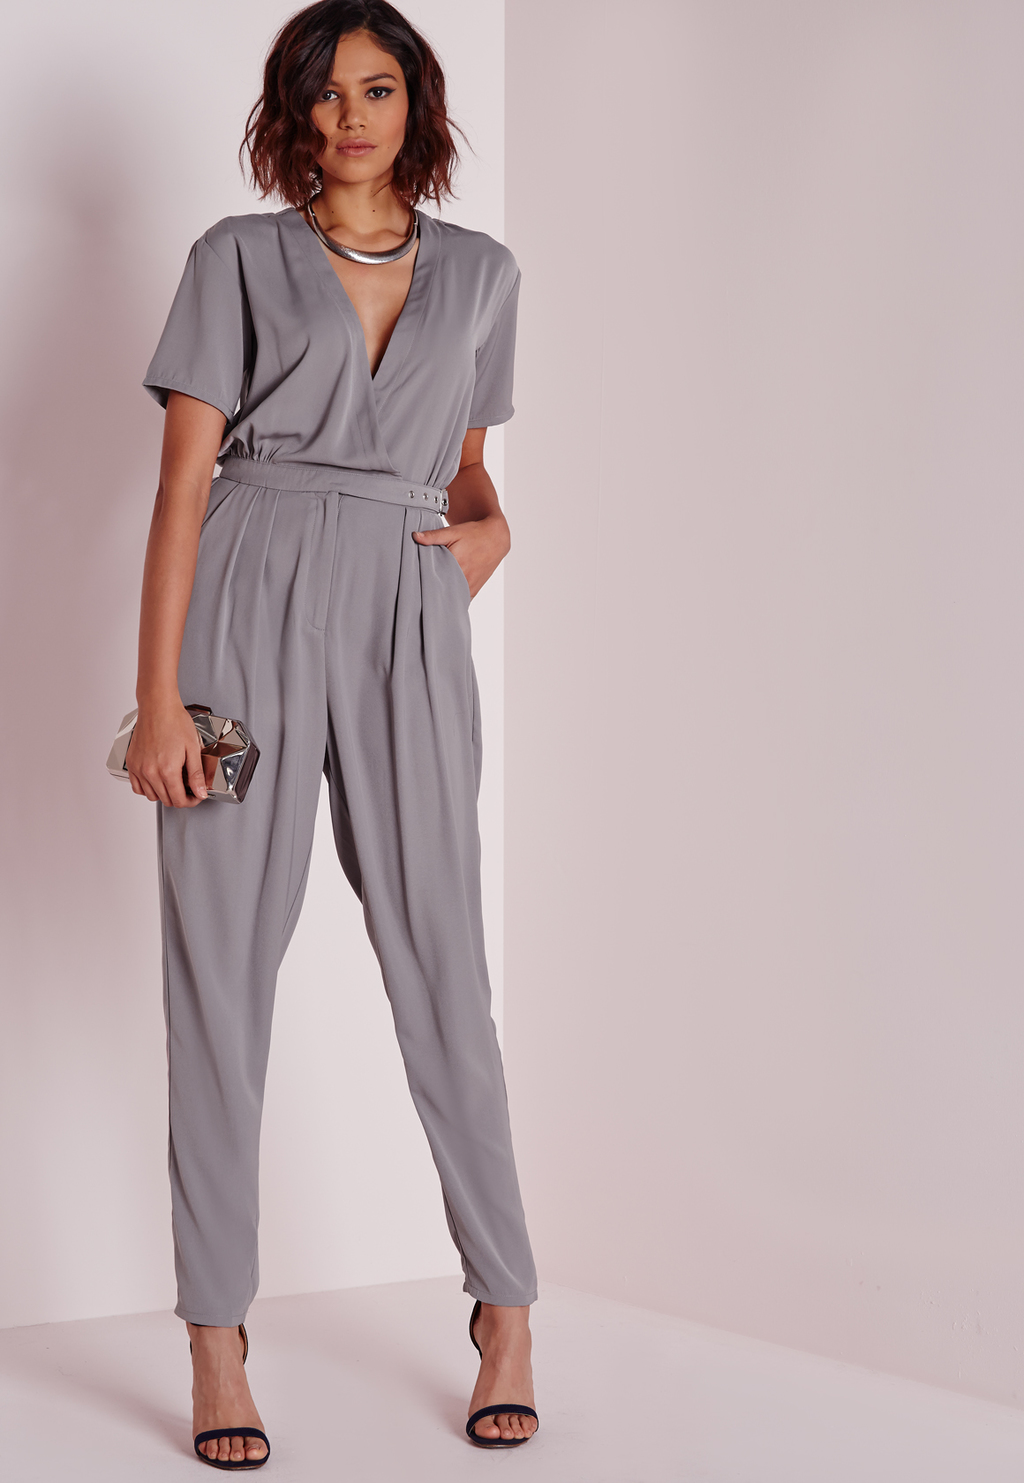 Belted Wrap Front Jumpsuit Grey, Grey - length: standard; neckline: low v-neck; pattern: plain; waist detail: belted waist/tie at waist/drawstring; predominant colour: light grey; occasions: evening; fit: body skimming; fibres: polyester/polyamide - 100%; sleeve length: short sleeve; sleeve style: standard; style: jumpsuit; pattern type: fabric; texture group: jersey - stretchy/drapey; season: a/w 2015